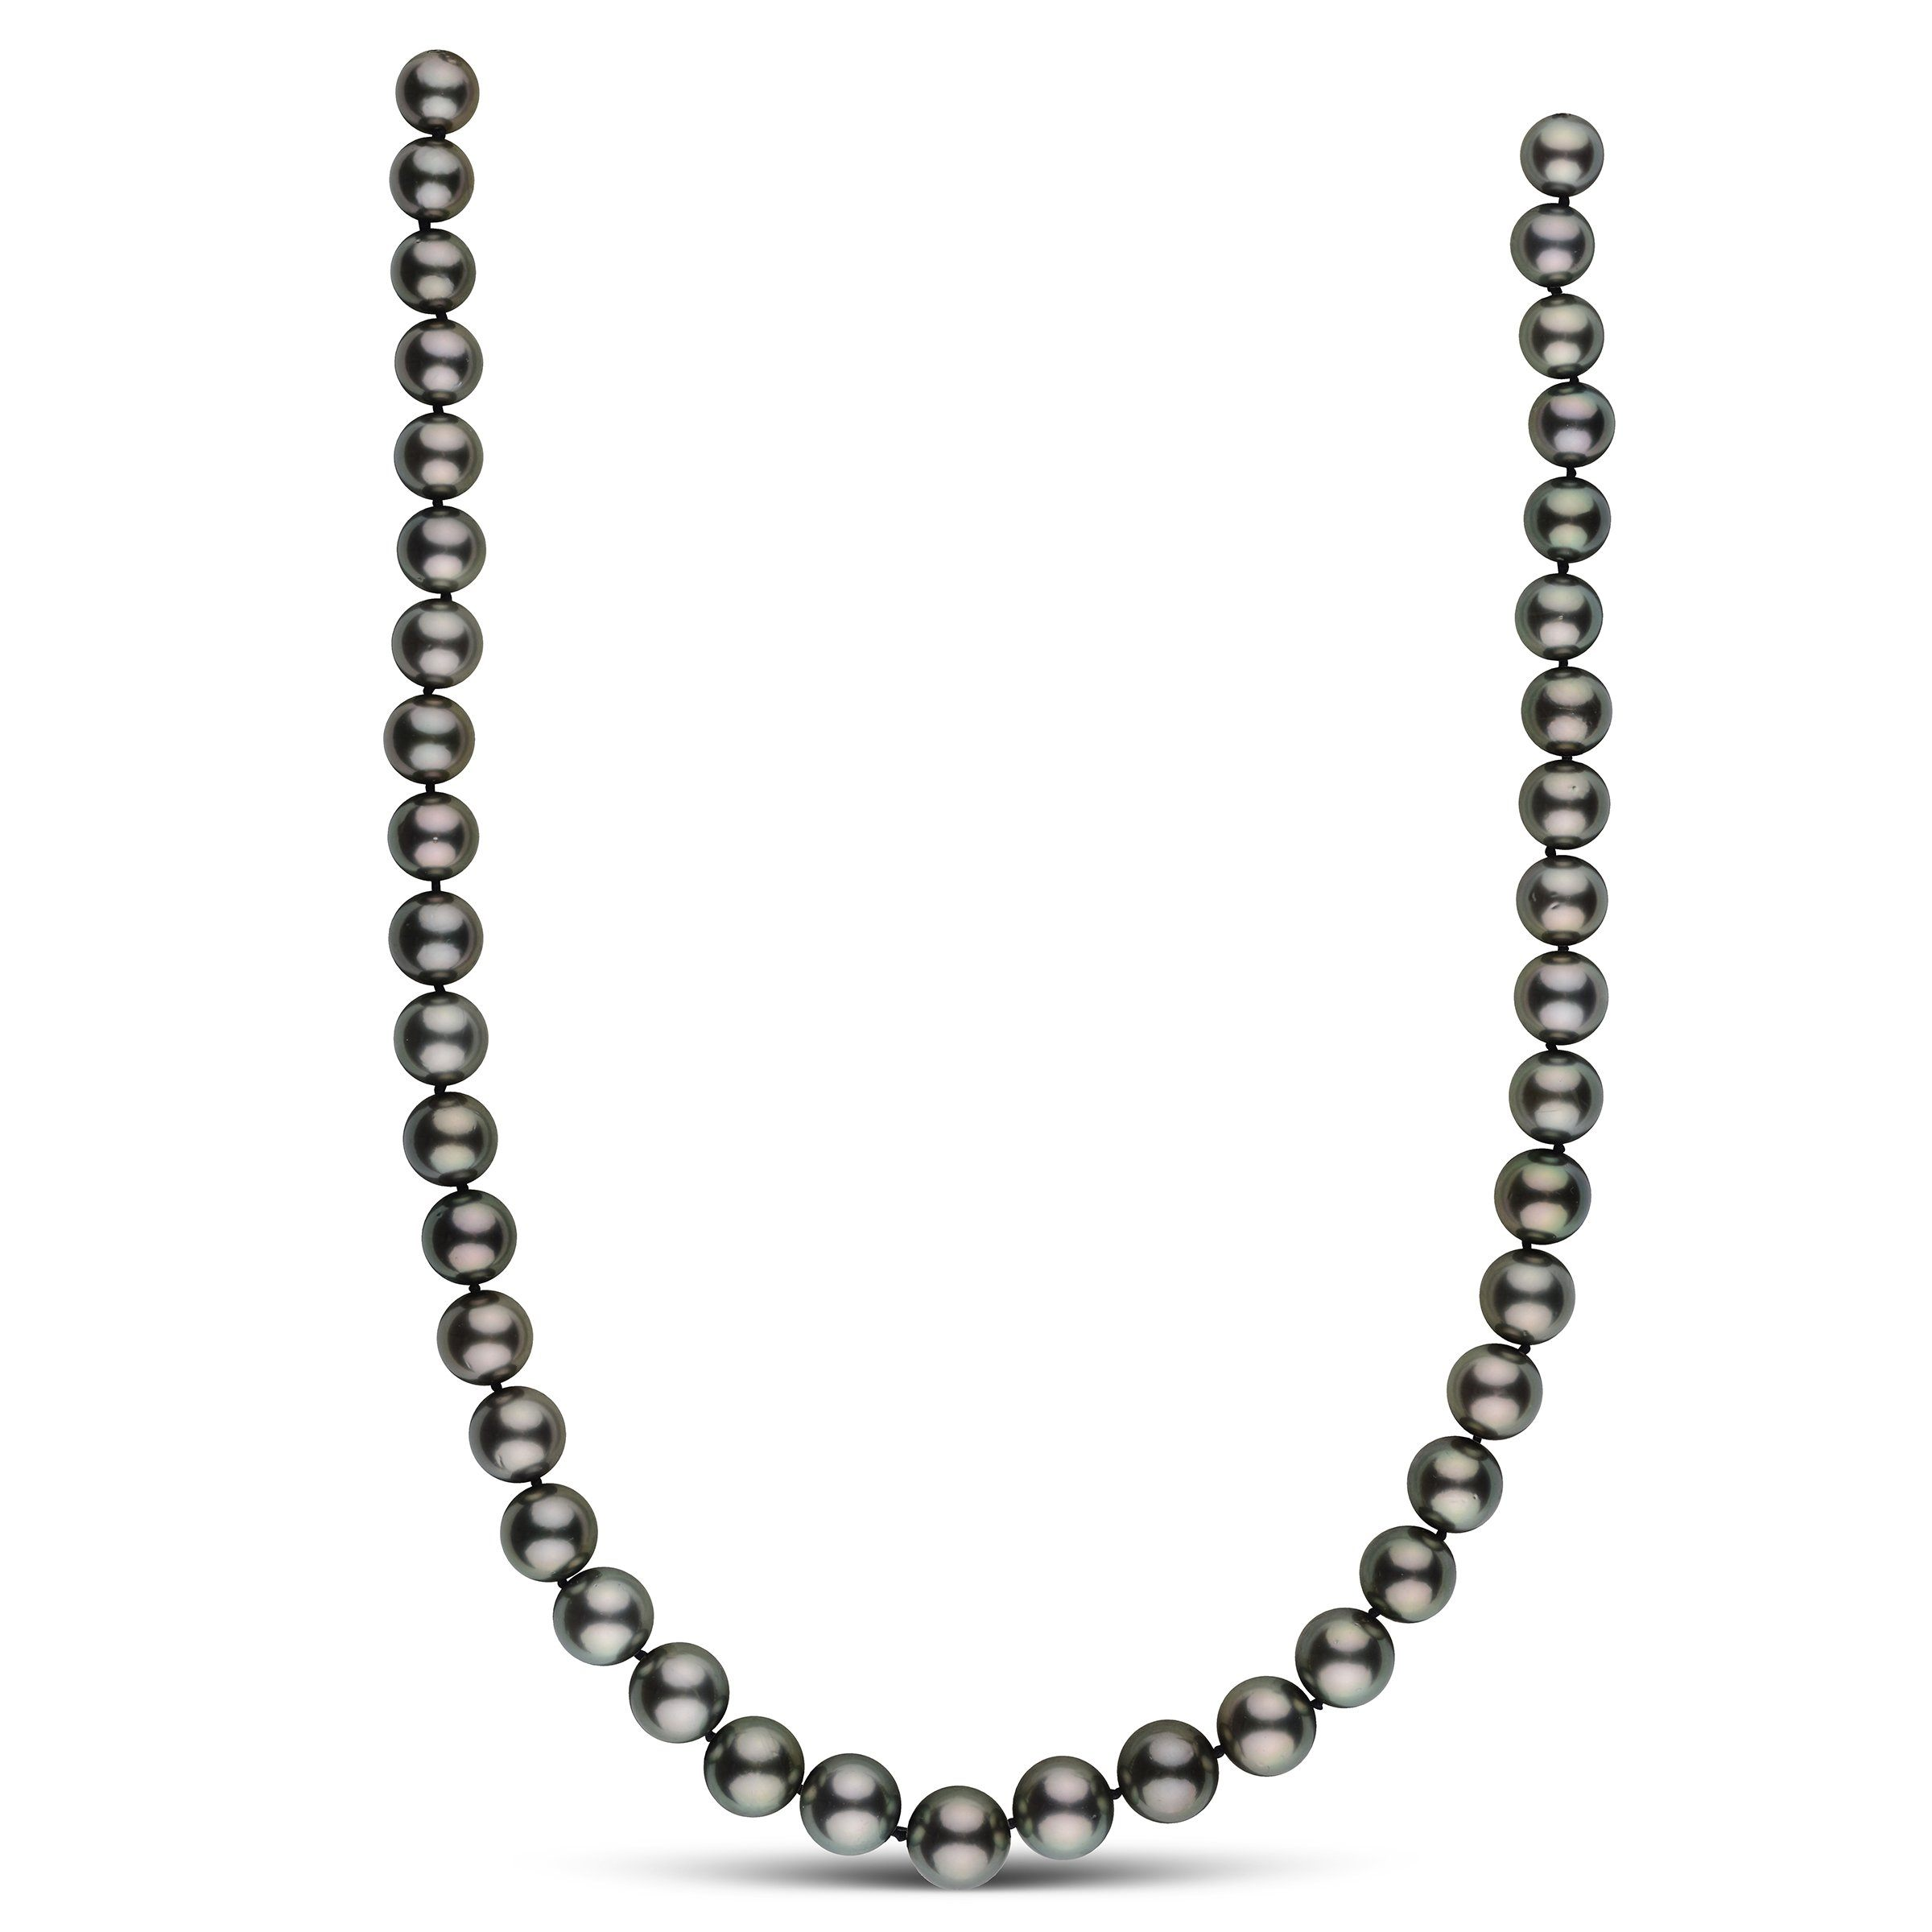 9.0-11.2 mm AA+/AAA Round Tahitian Pearl Necklace